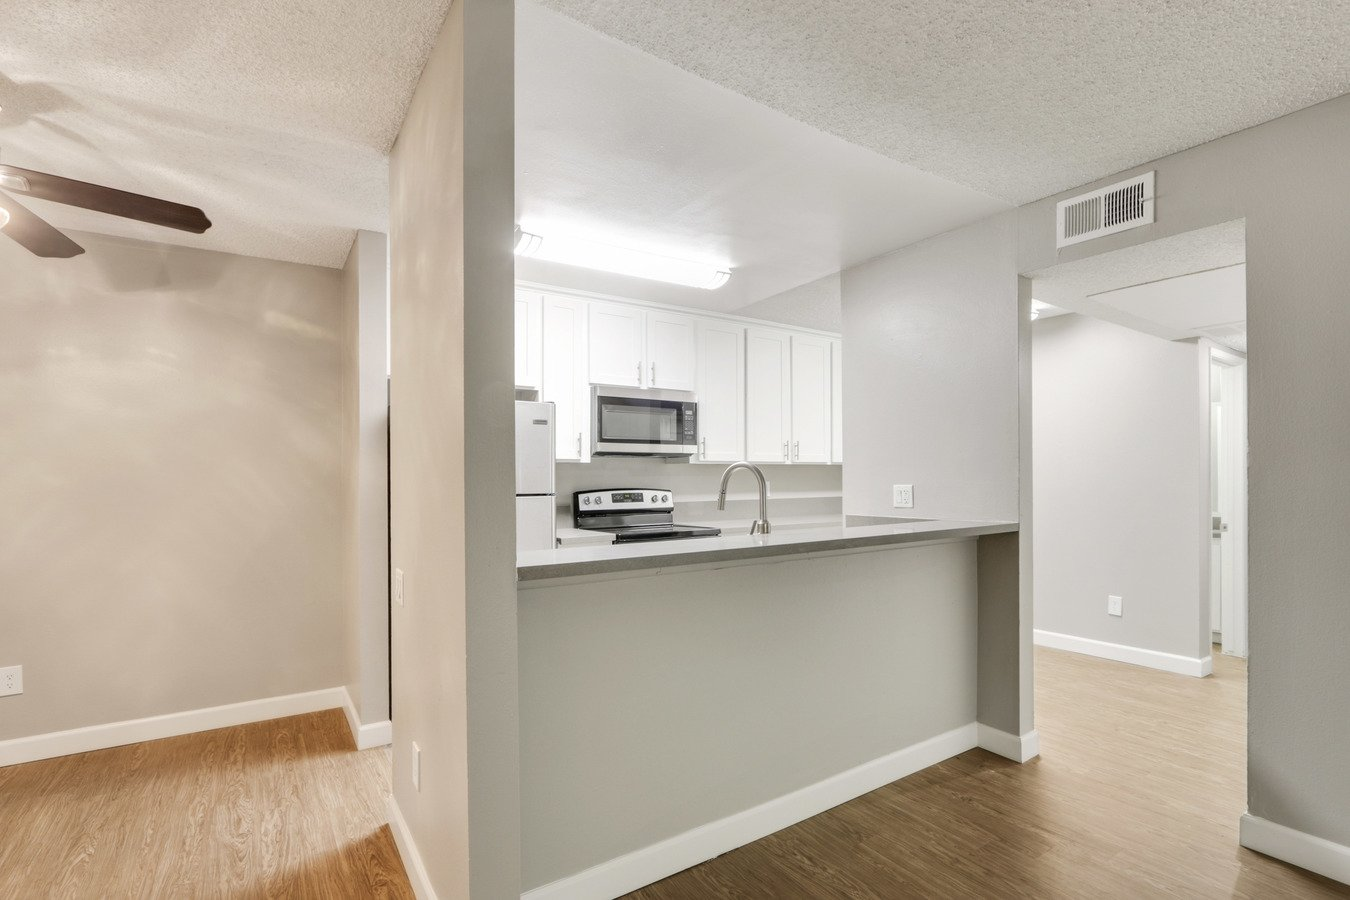 2 Bedrooms 2 Bathrooms Apartment for rent at Brookwood in Covina, CA